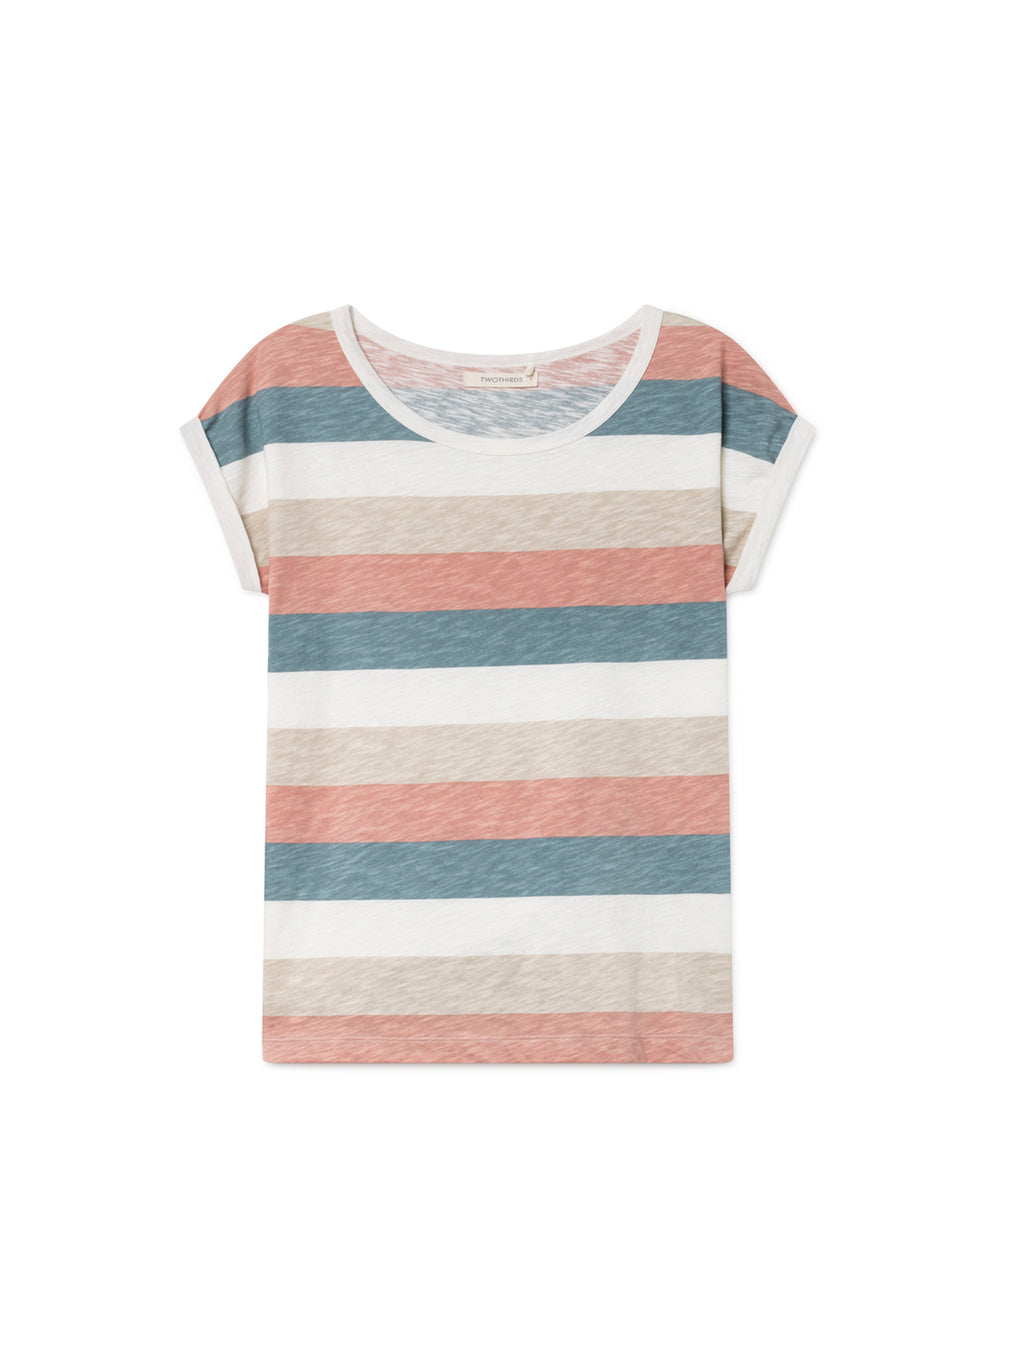 TWOTHIRDS Womens Tee: Gortina - Light front